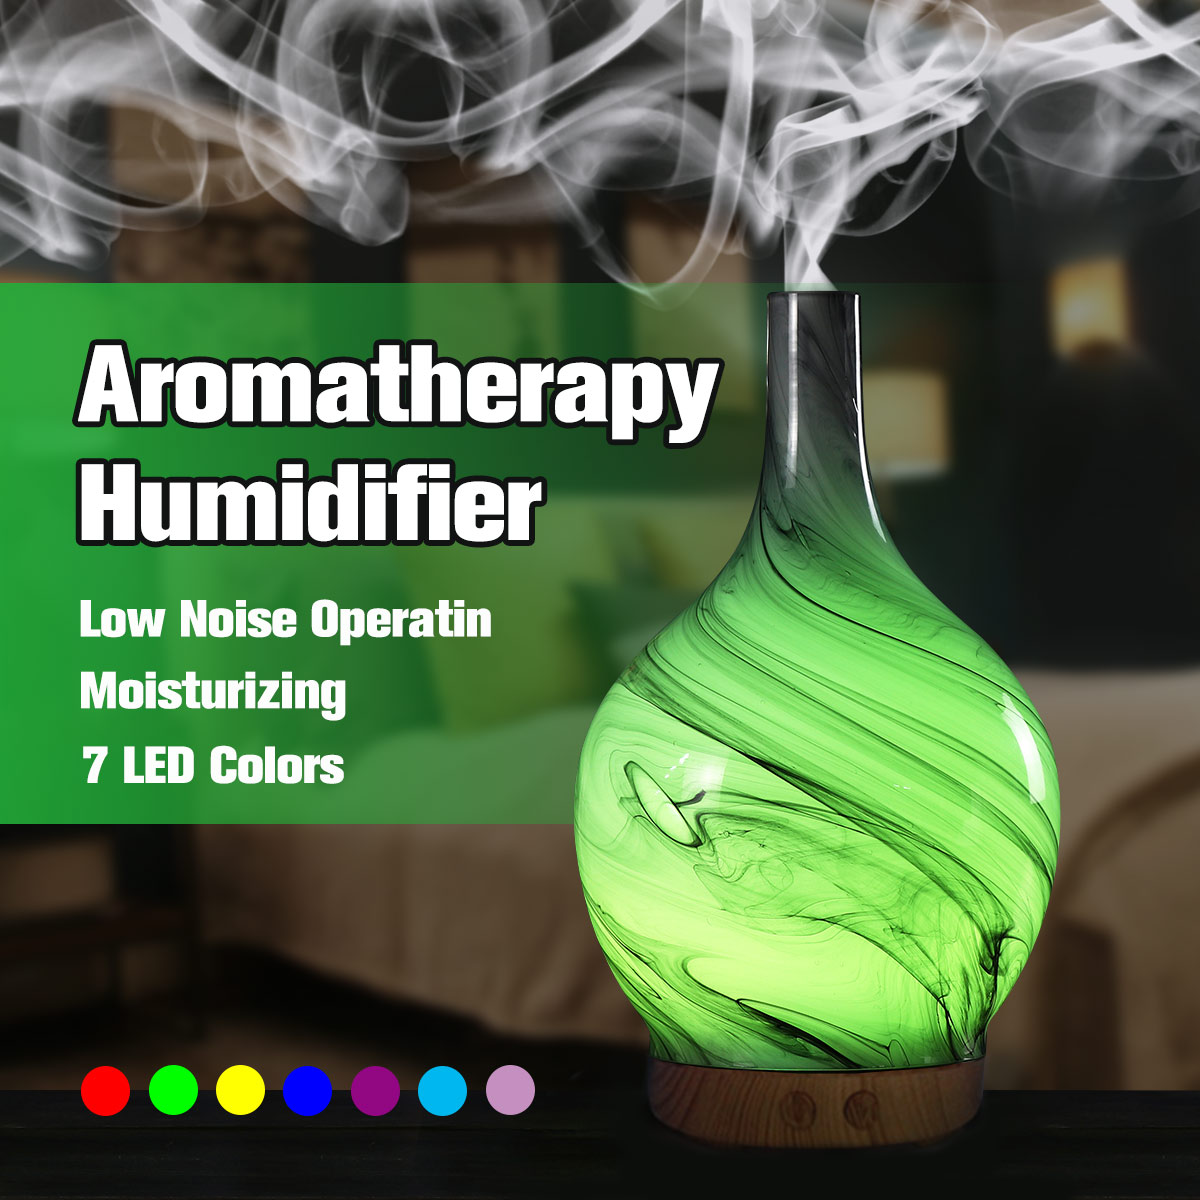 100ml Ultrasonic Air Humidifier Glass Essential Oil Diffuser Aromatherapy Vase Shape LED Light Home Office Living Room Spa Yoga